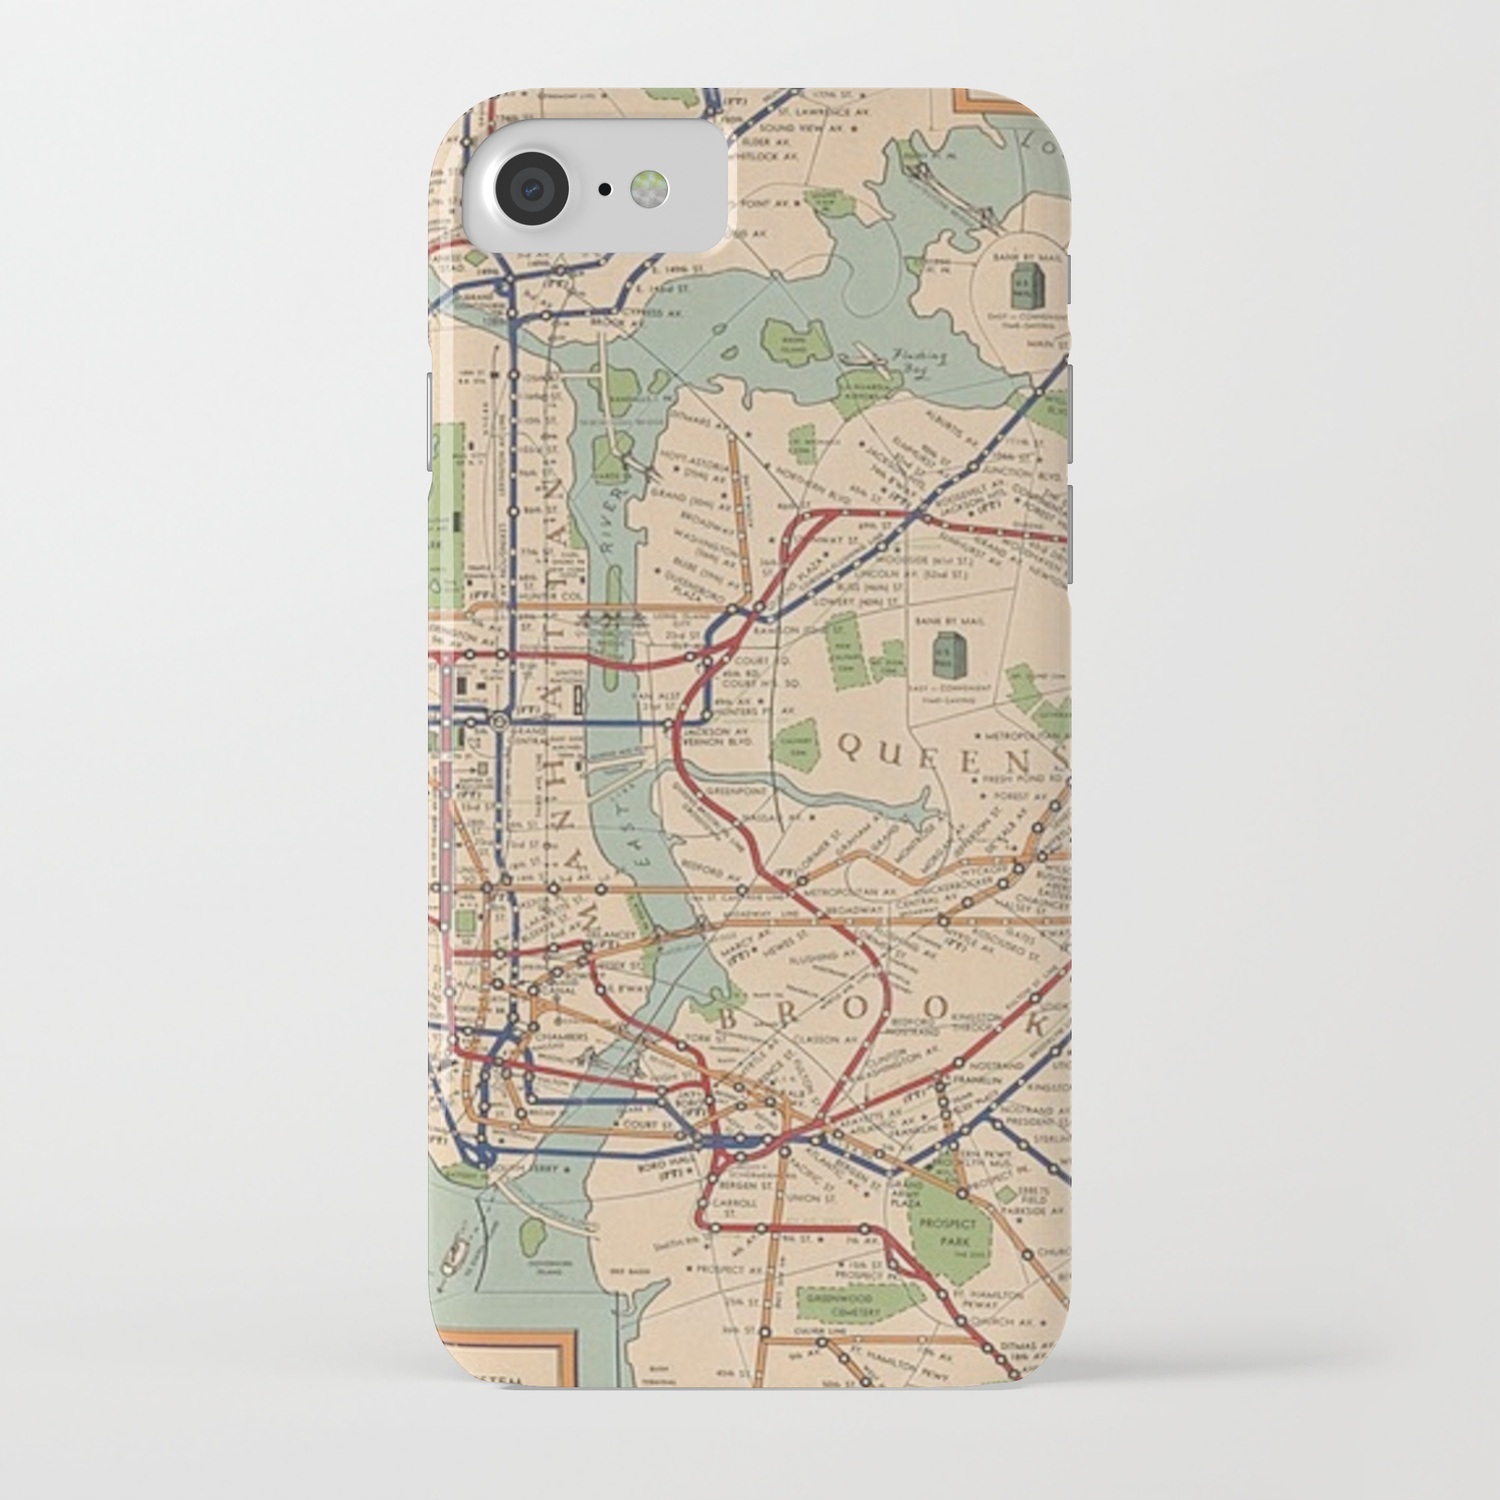 Portable Nyc Subway Map.New York City Metro Subway System Map 1954 Iphone Case